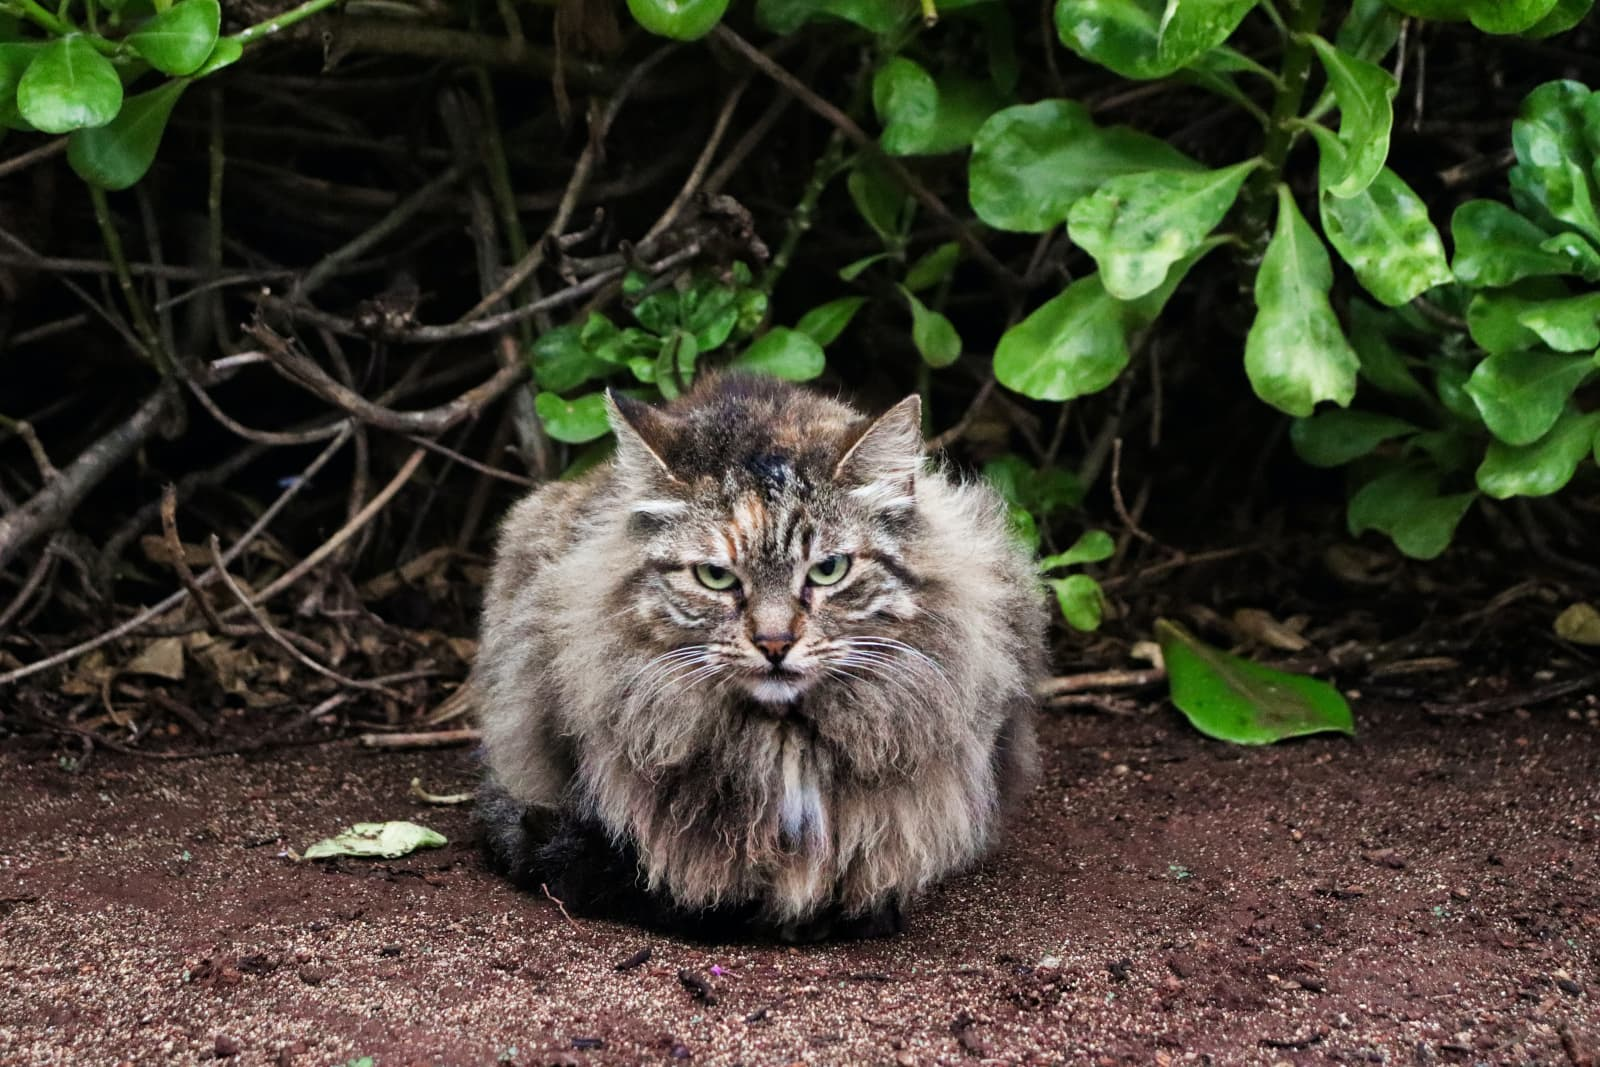 Grumpy Cat With Greenery Behind